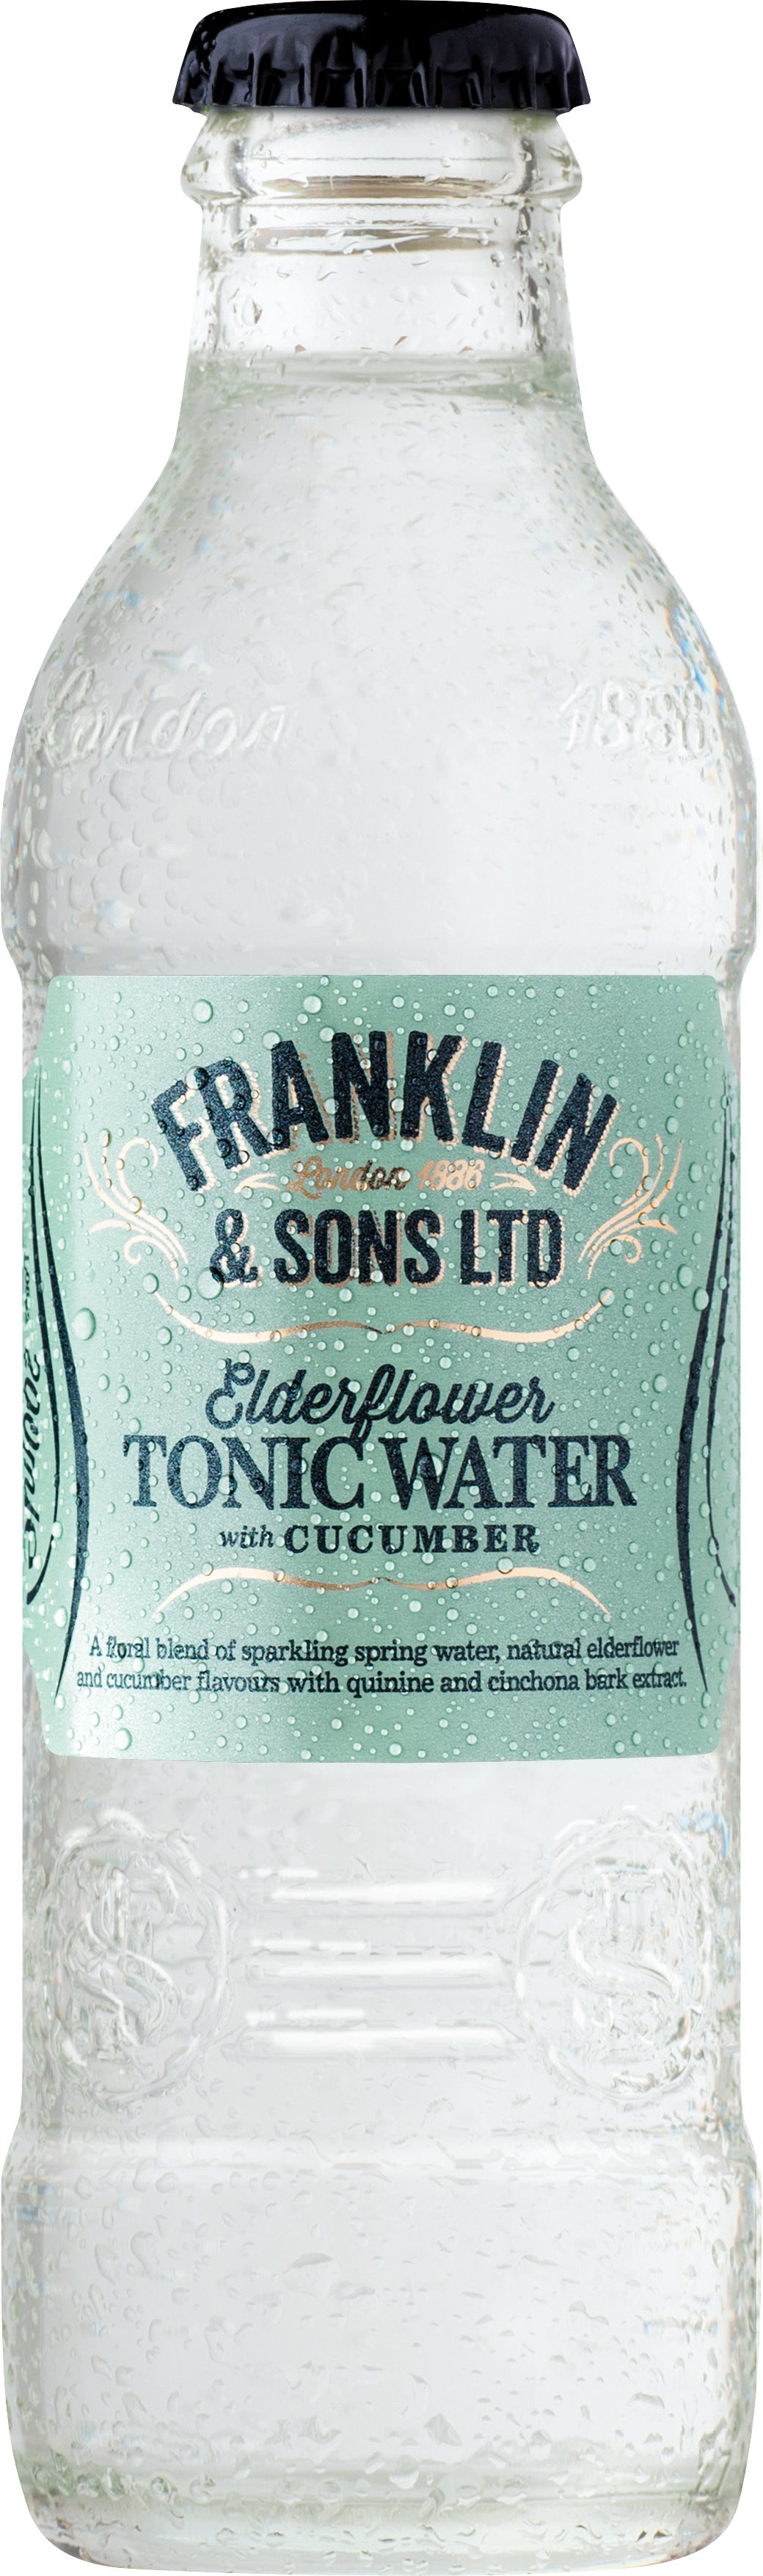 Frankling & Sons Elderflower Tonic water with Cucumber (24 x 200ml bottles)